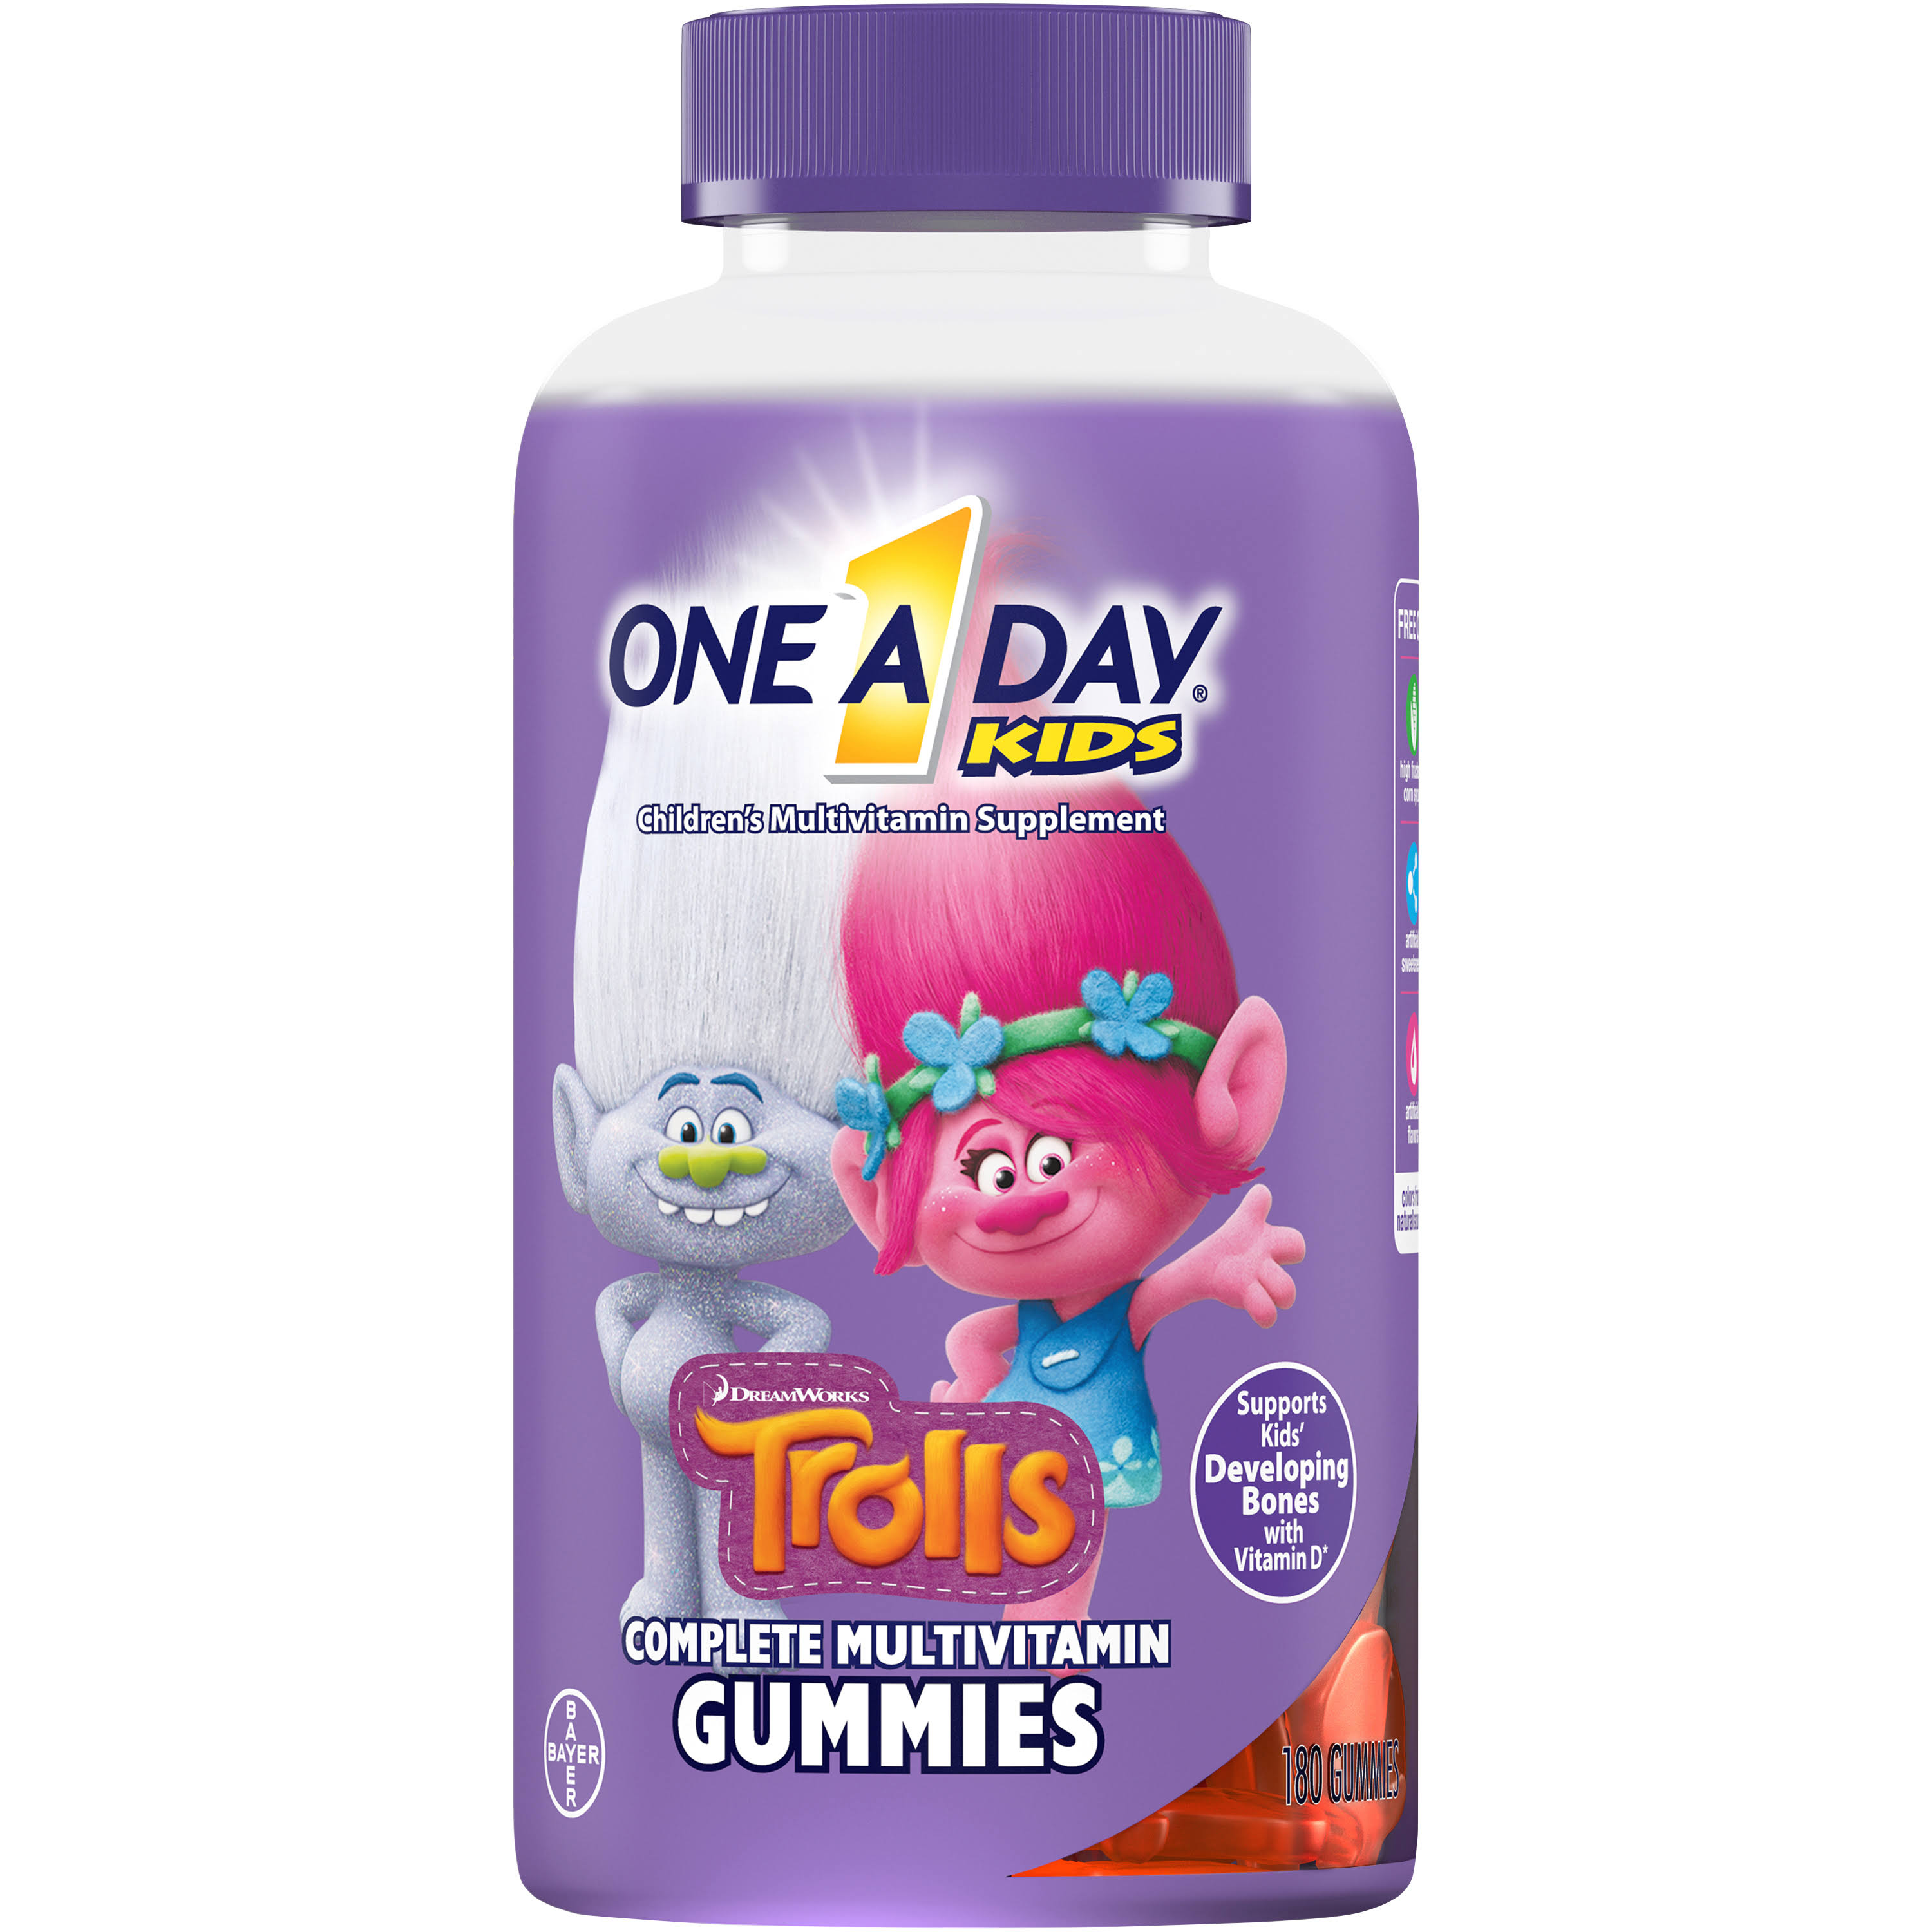 One A Day Kids Trolls Complete Multivitamin Gummies - x180